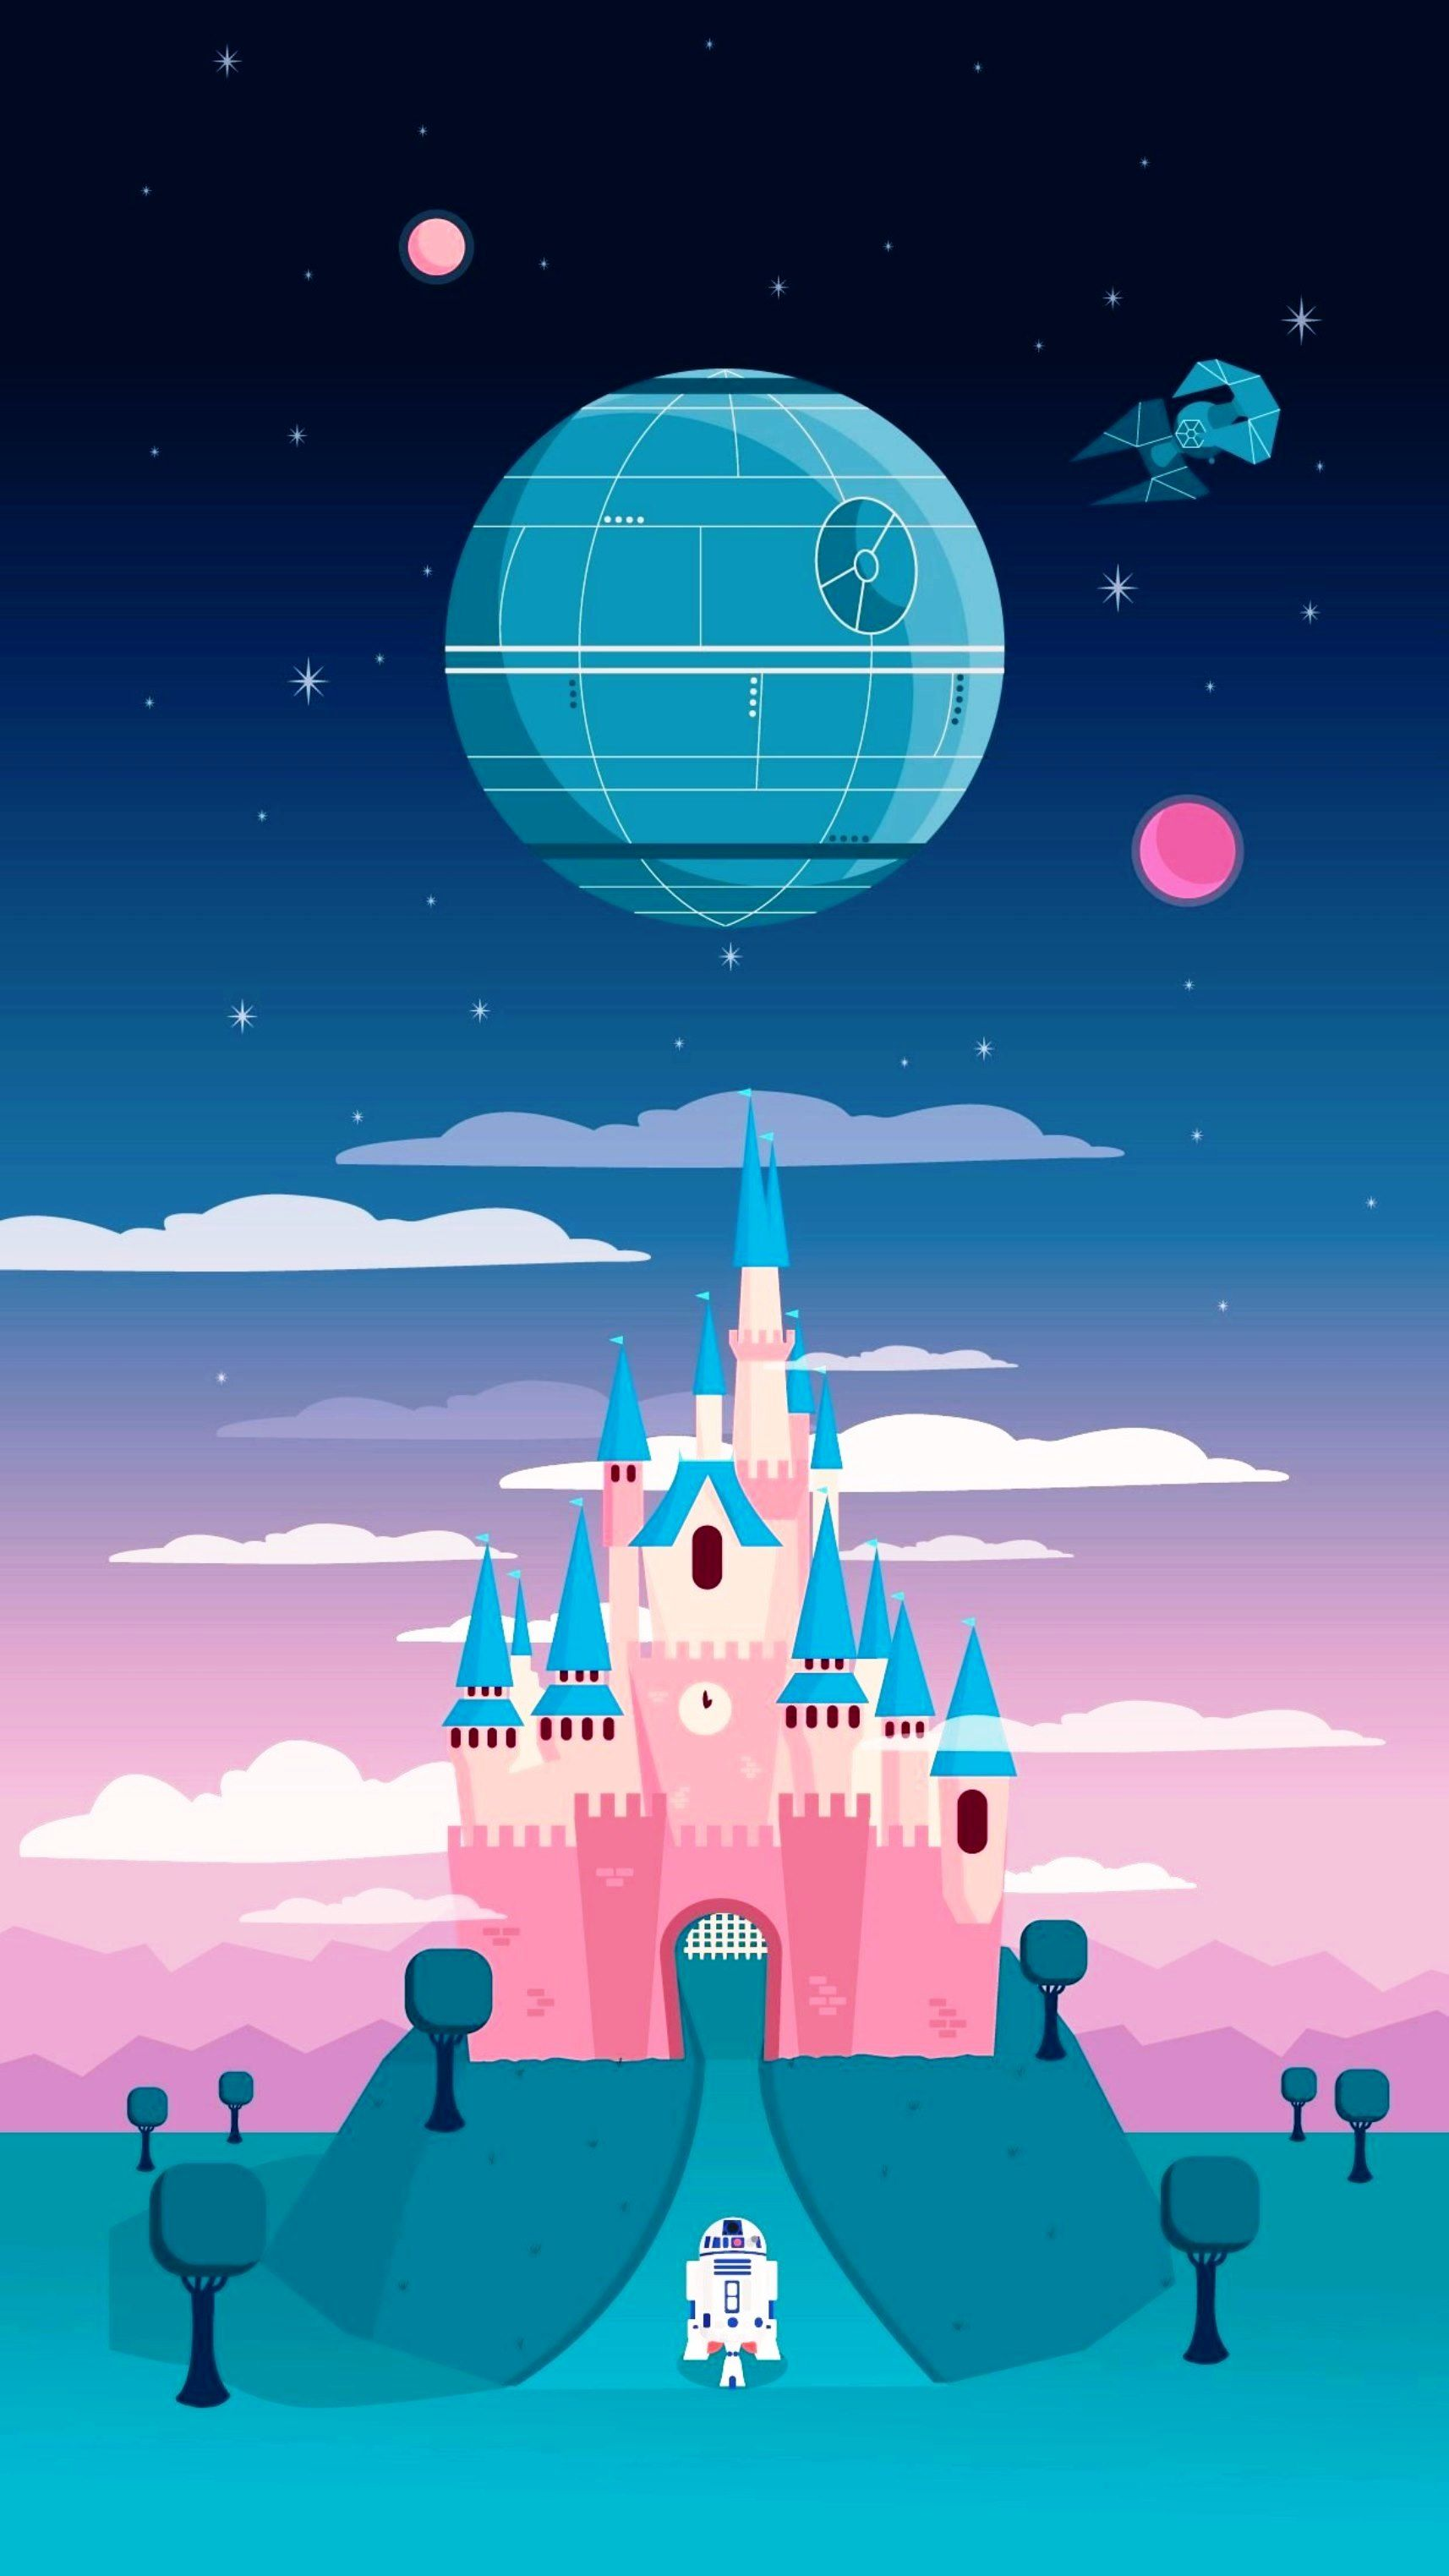 best ideas about Disney wallpaper on Pinterest Disney